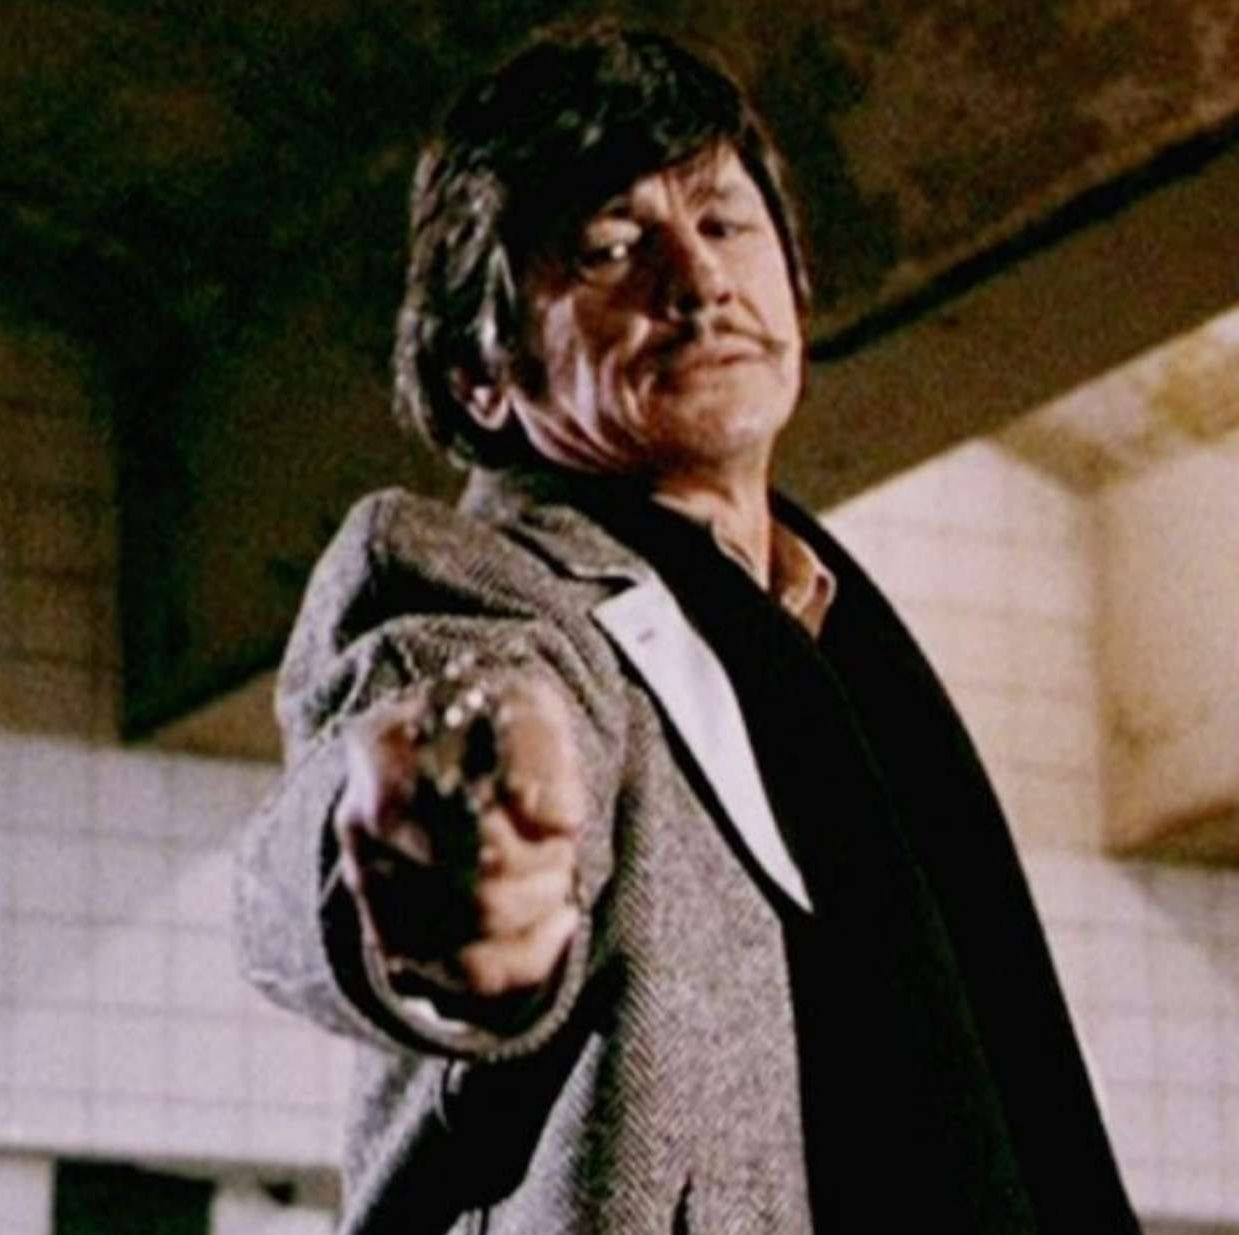 Death Wish After his wife and daughter are assaulted (and his wife dies from the attack), a mild-mannered Manhattan architect (Charles Bronson) snaps and turns into a street vigilante who delivers his own form of justice in this classic crime thriller.